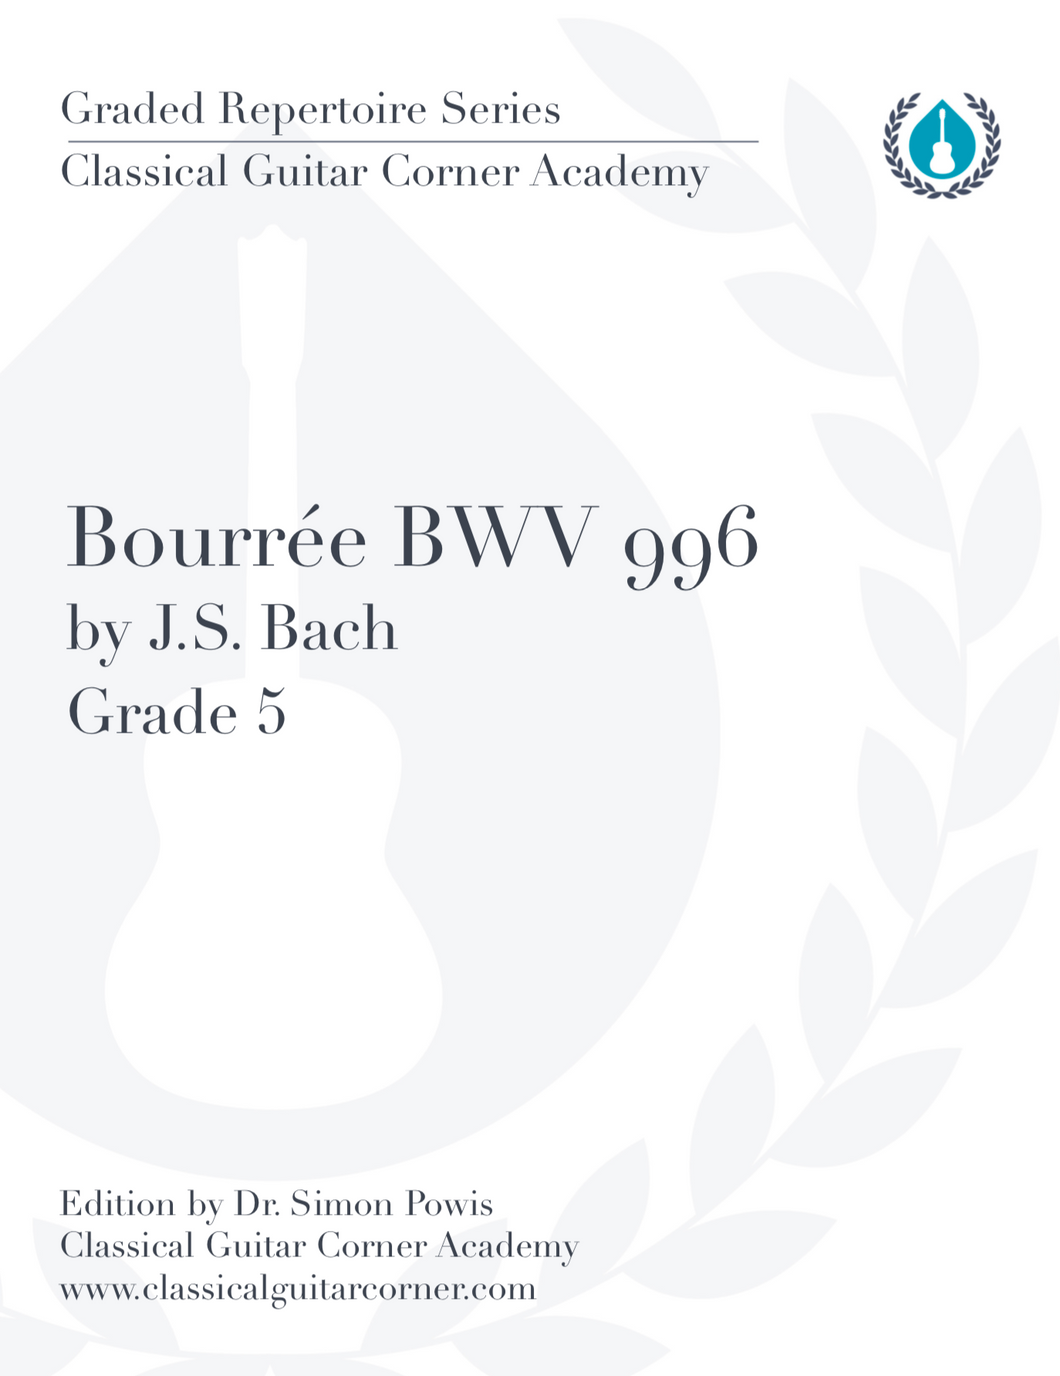 Bourrée by J.S. Bach BWV 996